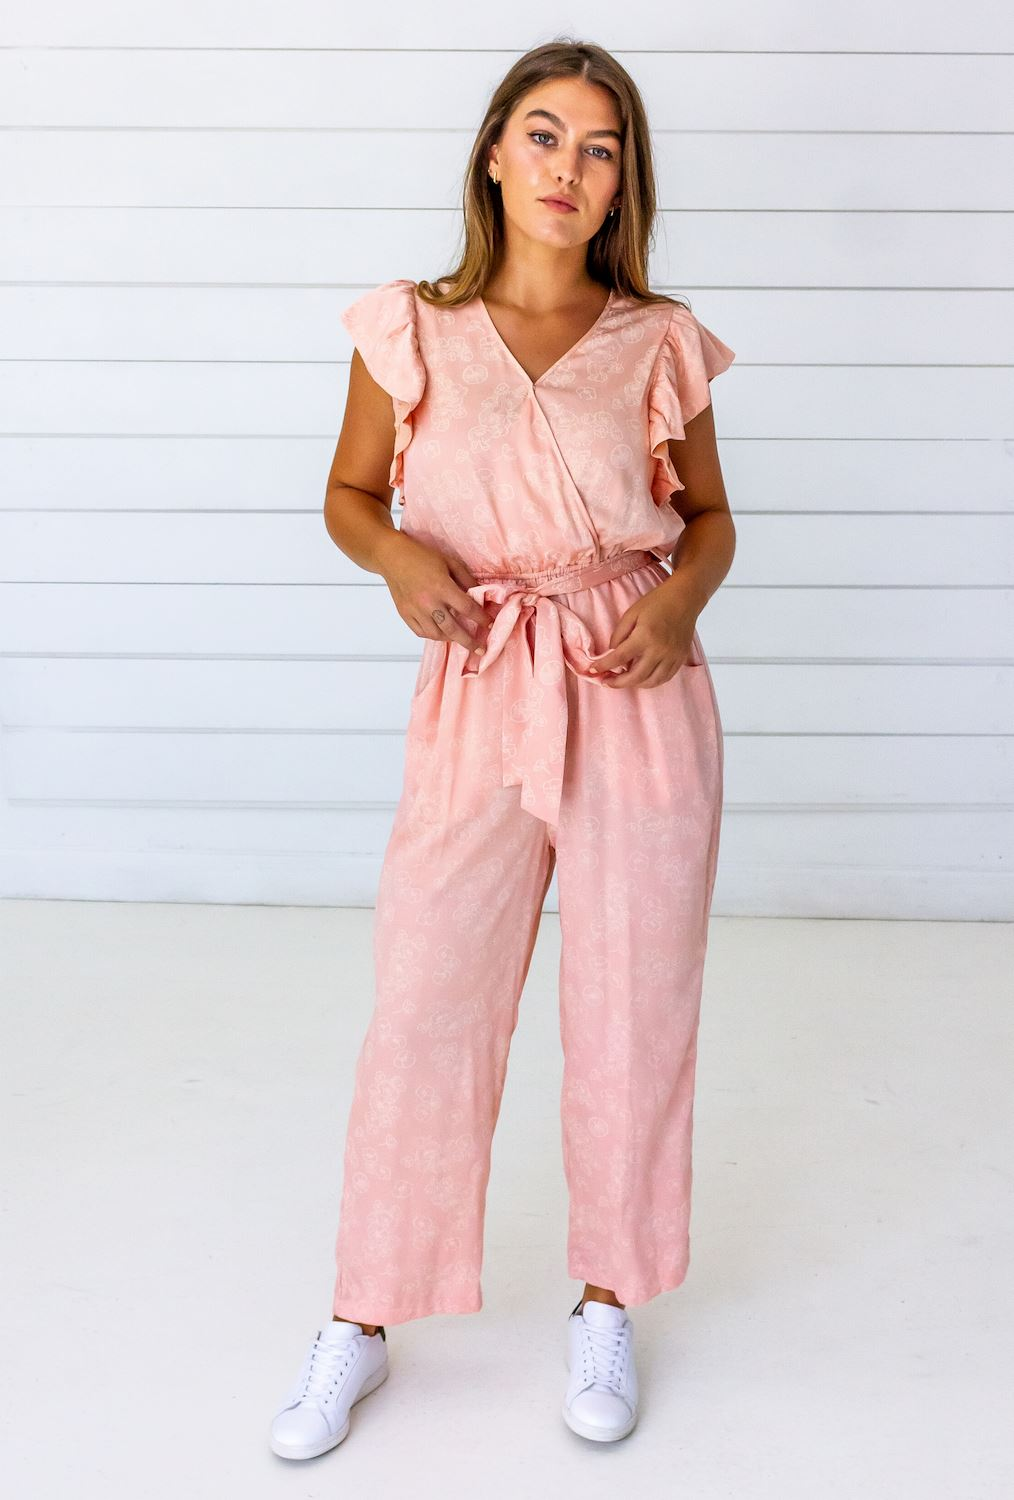 Symbology Tattoo Floral Modal Ruffle Jumpsuit - Blush and Cream Jumpsuits Symbology